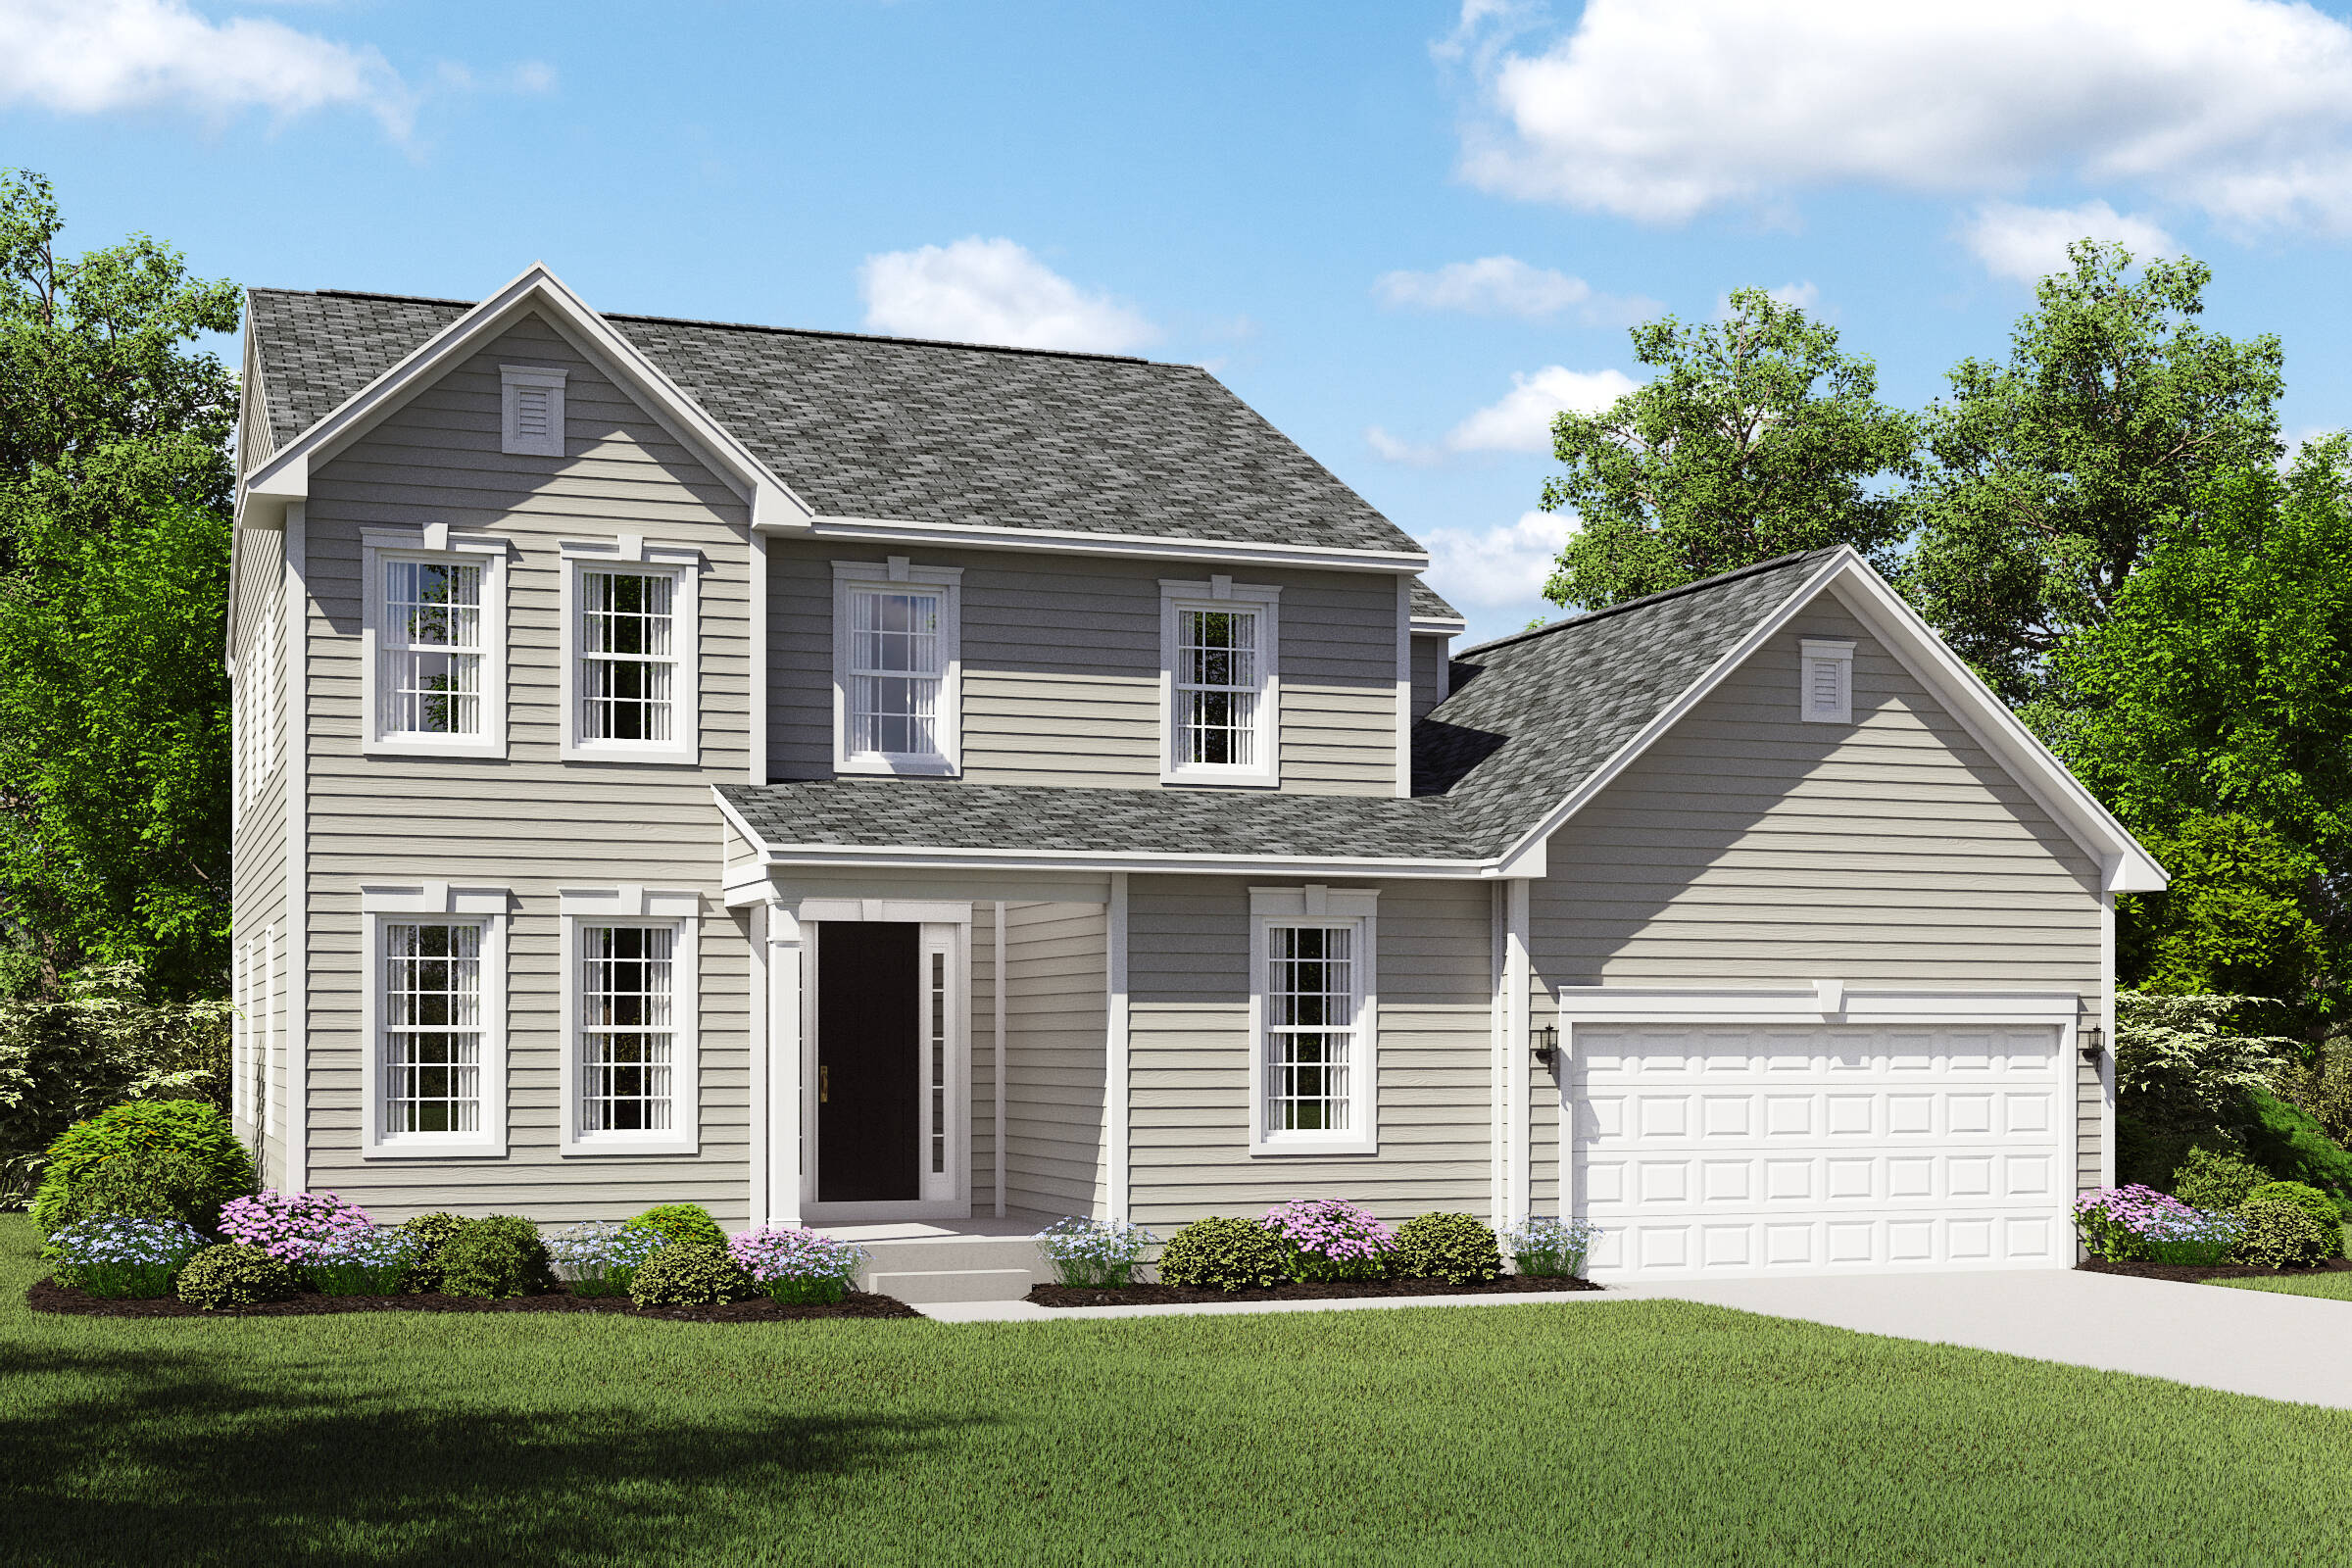 hopewell bs northeast ohio two story new homes